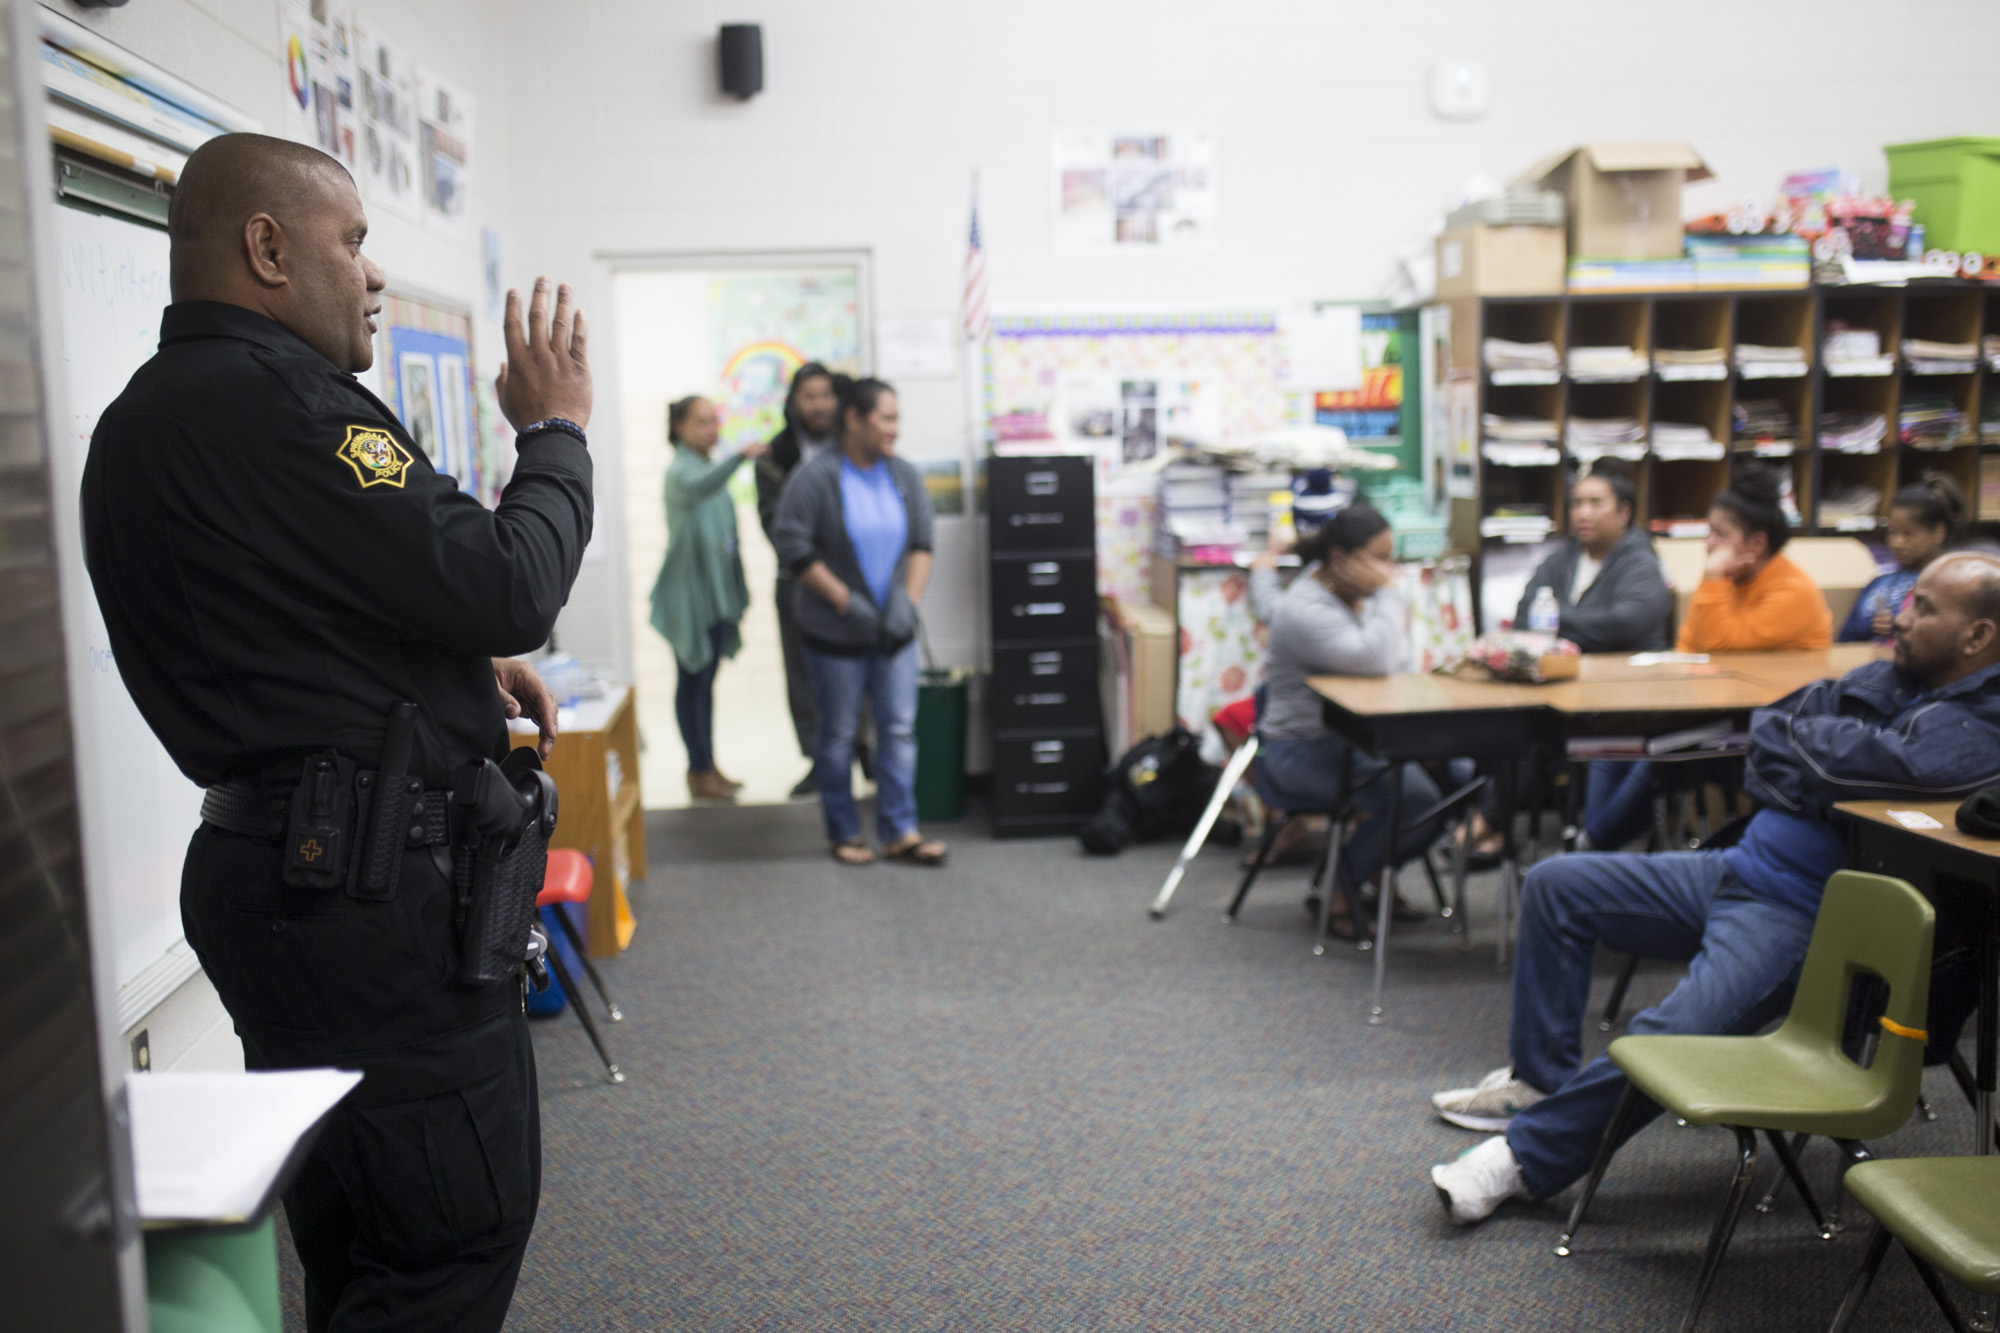 Robert Aini, school resource officer, (left) speaks with Marshallese parents at the Coke with a Cop event at Jones Elementary School in Springdale, February 13, 2018.